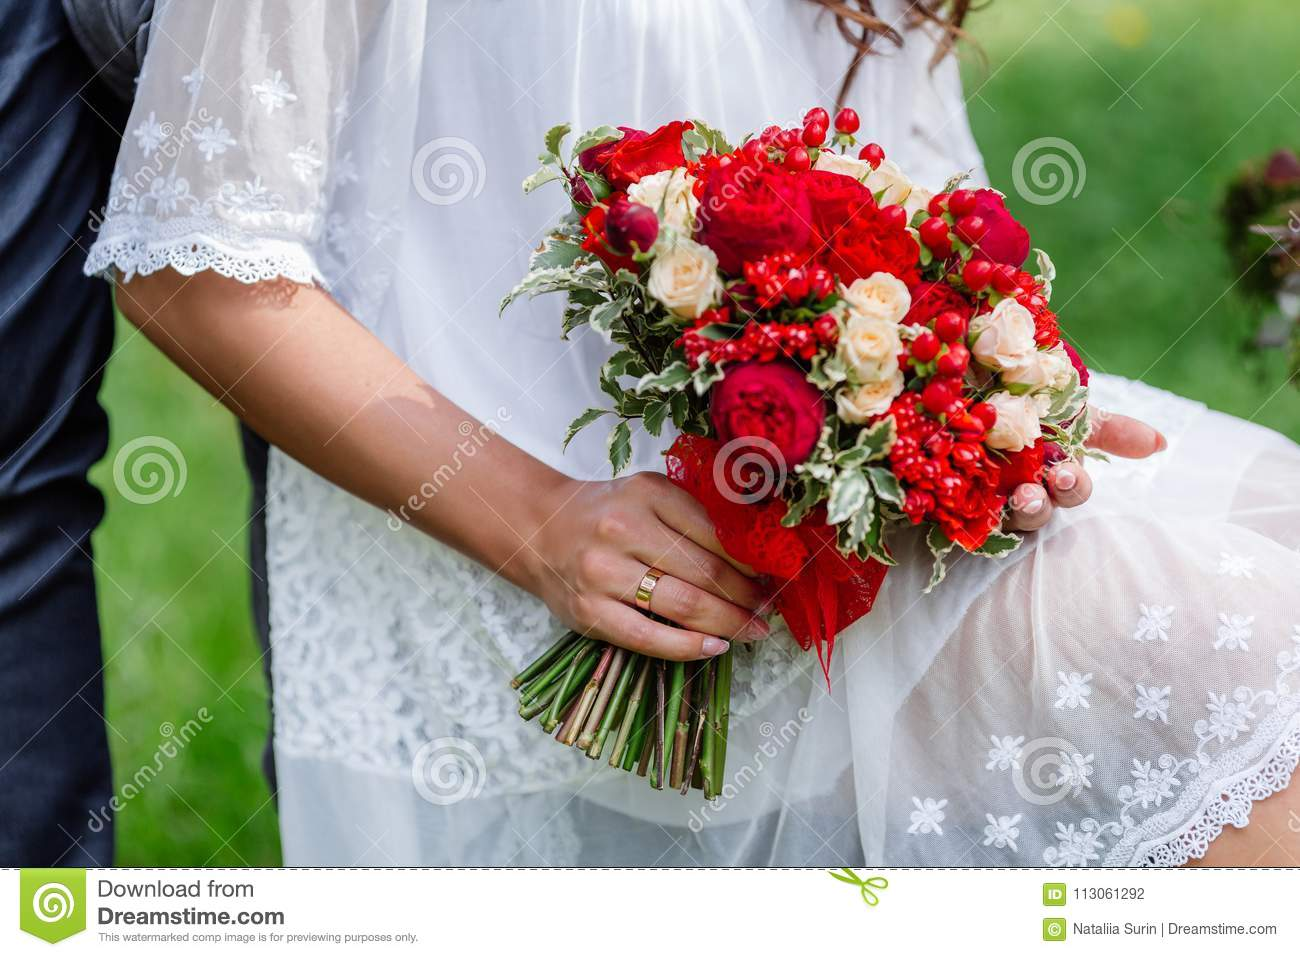 Bride In White Dress Holding In Hands Delicate Expensive Trendy